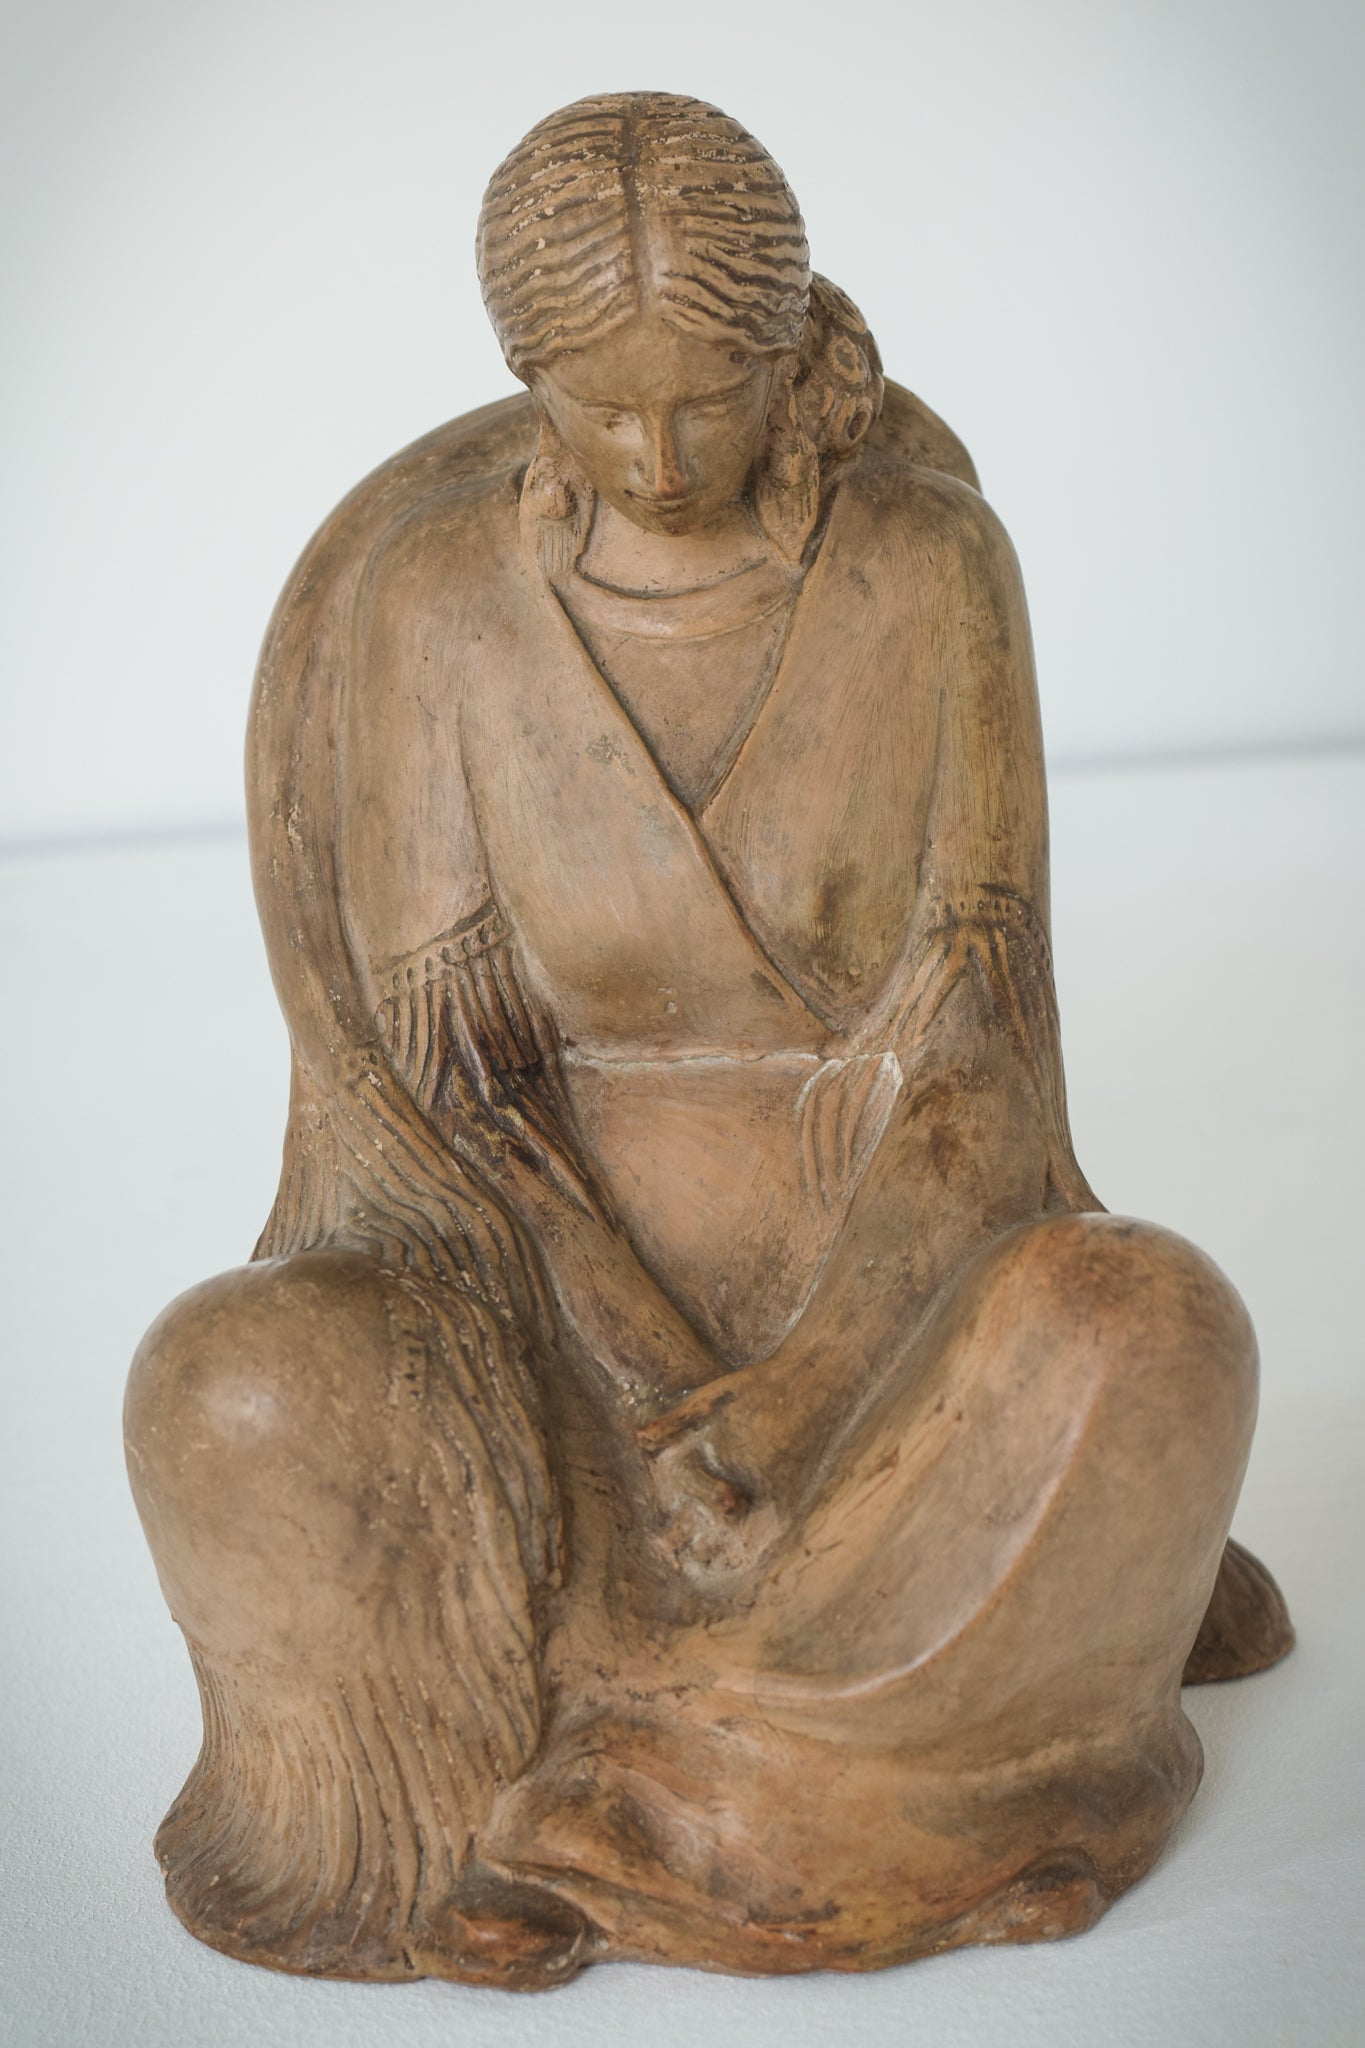 Terracotta Sculpture of A Draped Seated Woman